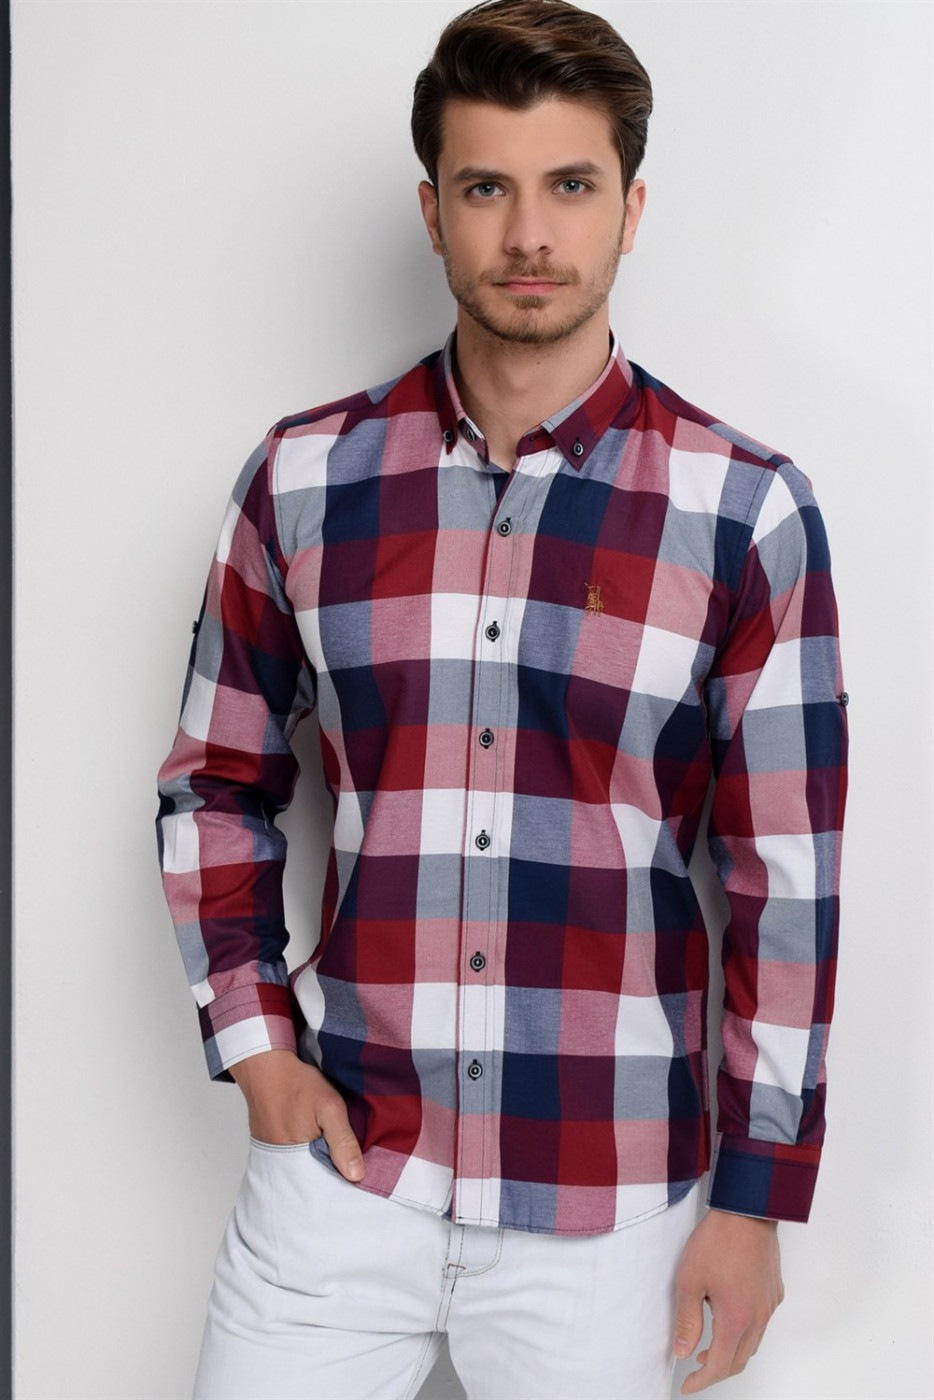 G662 DEWBERRY MEN's SHIRT-LACİVERT- BURGUNDY